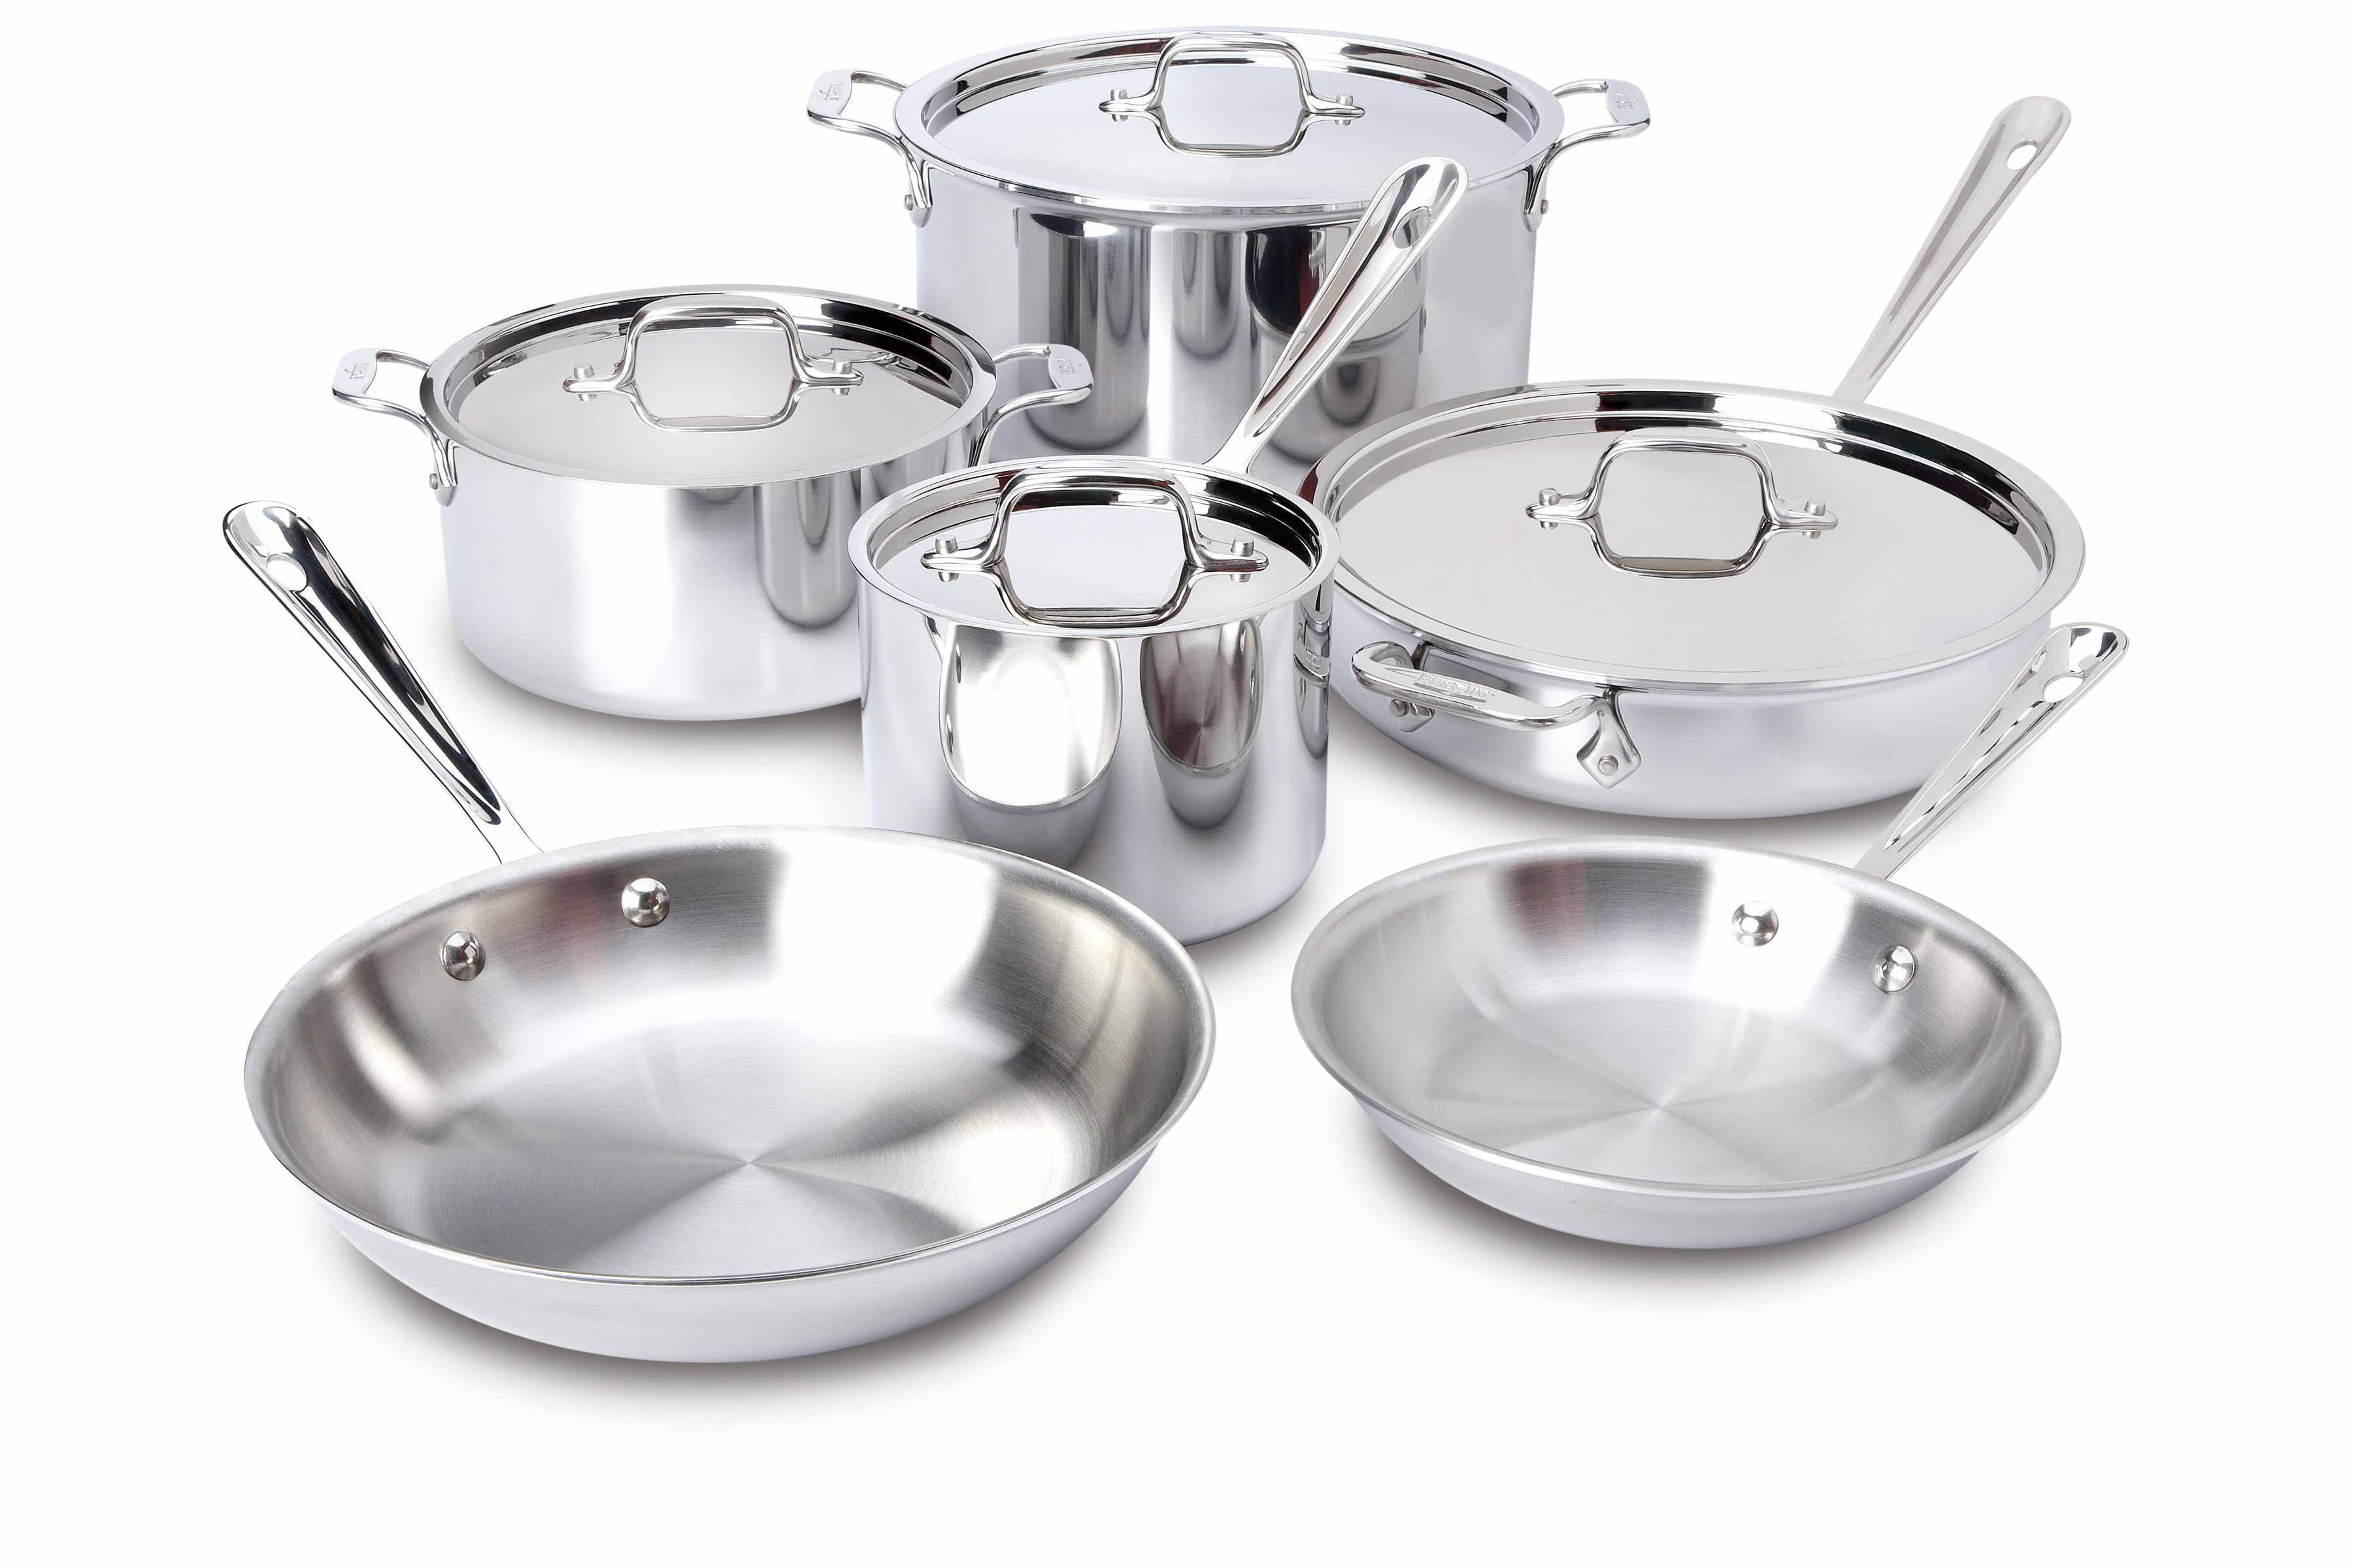 Browse Top-of-the-Line Cookware Sets at Premier Gourmet